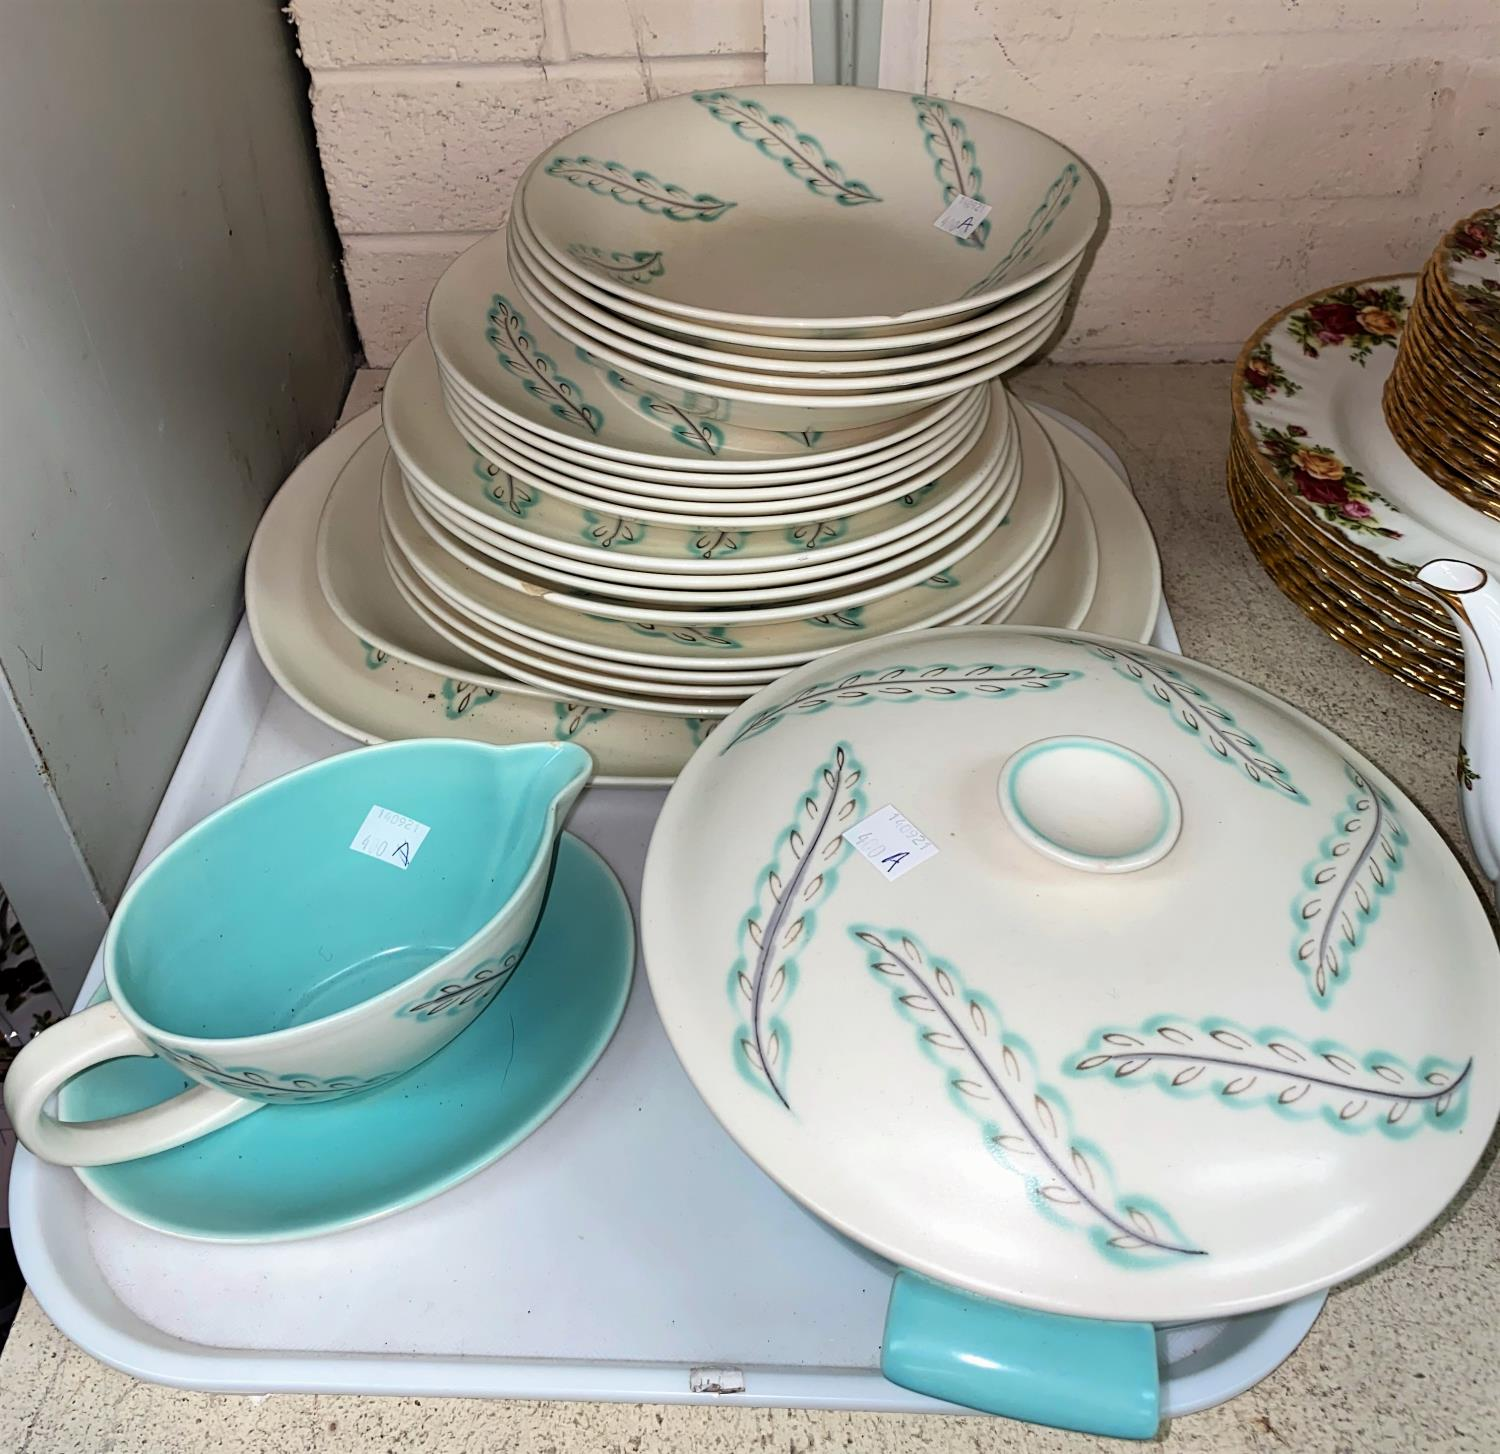 A Poole pottery part dinner service, 1950's hand painted free form design, 22 pieces